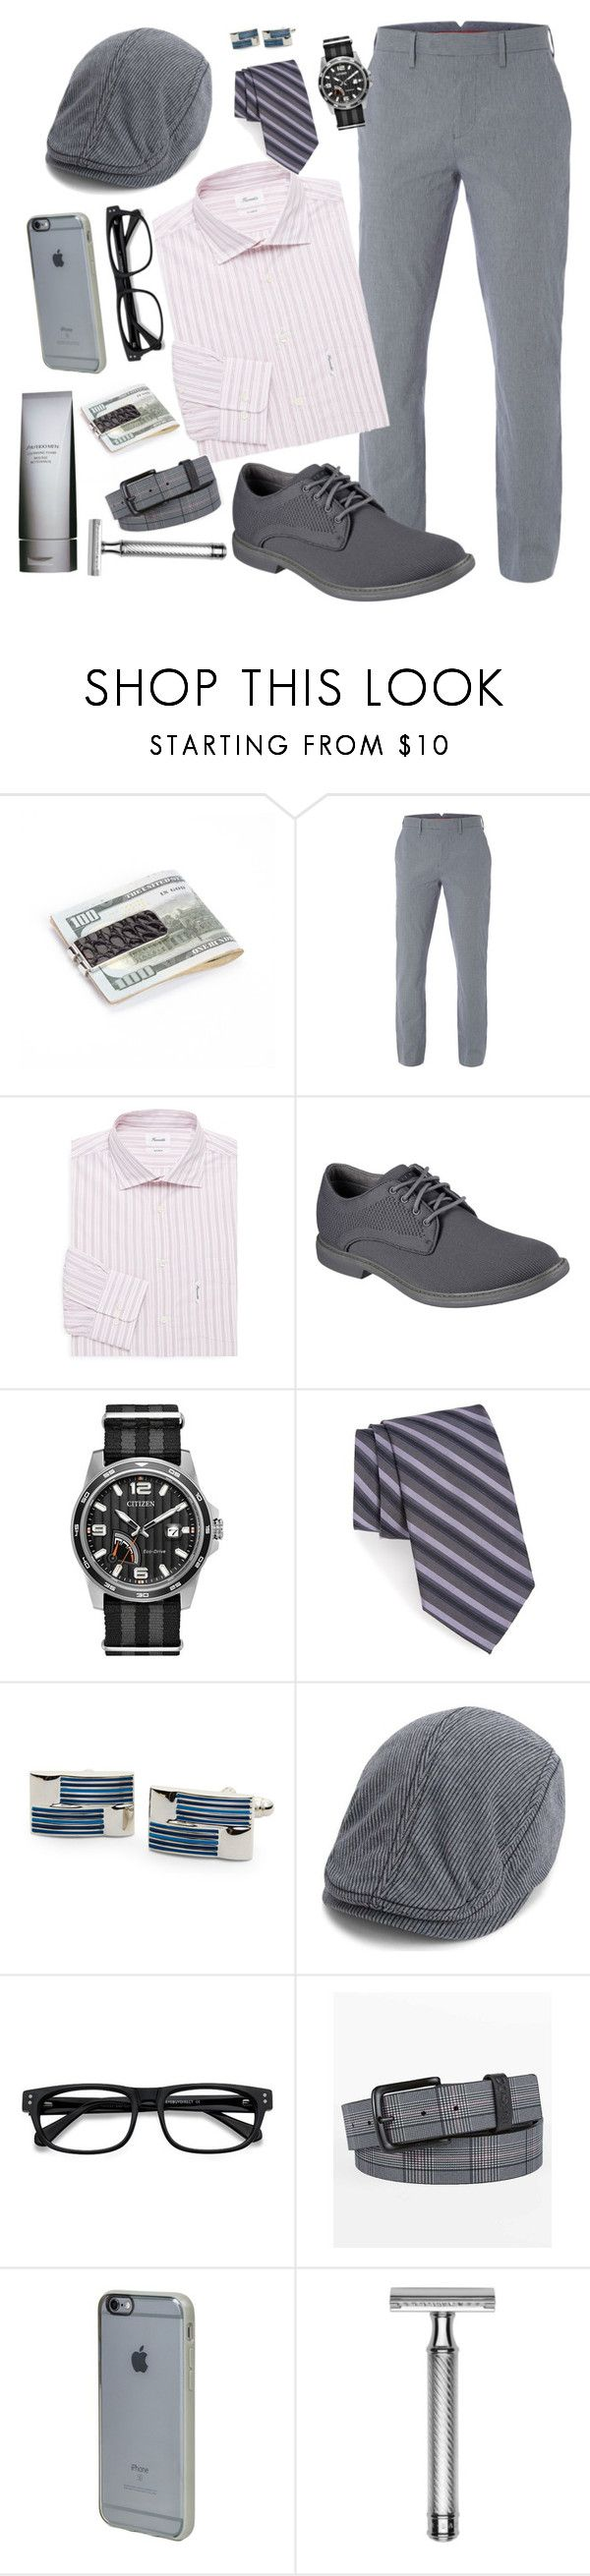 """""""The Man in Grey Stripes"""" by jazzola-19 ❤ liked on Polyvore featuring White Stuff, Façonnable, Skechers, Citizen, Calibrate, Kenneth Cole Reaction, Ben Sherman, EyeBuyDirect.com, Hurley and Incase"""